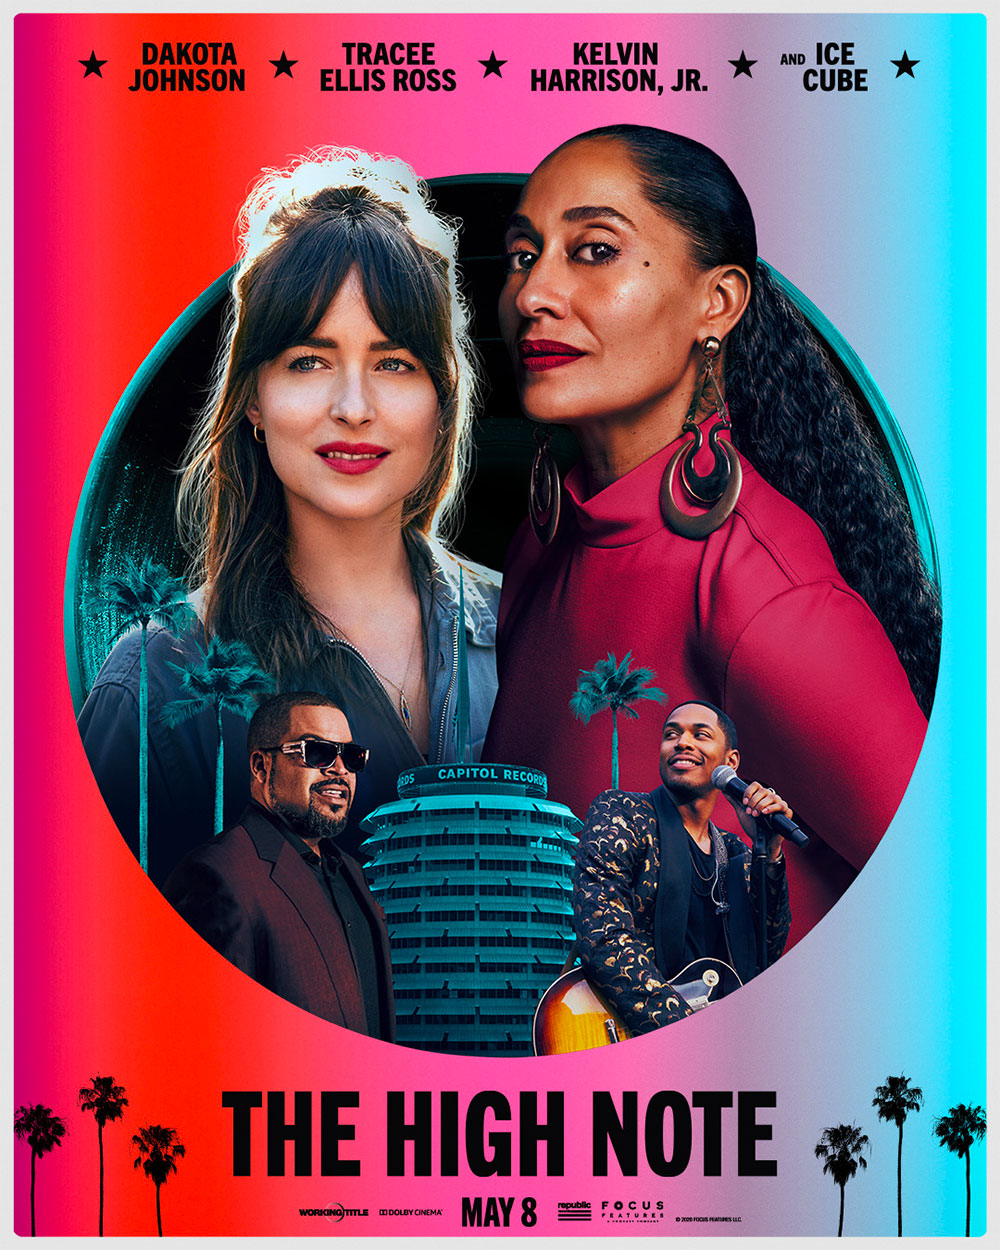 In foto Dakota Johnson (31 anni) Dall'articolo: The High Note, il poster originale del film.